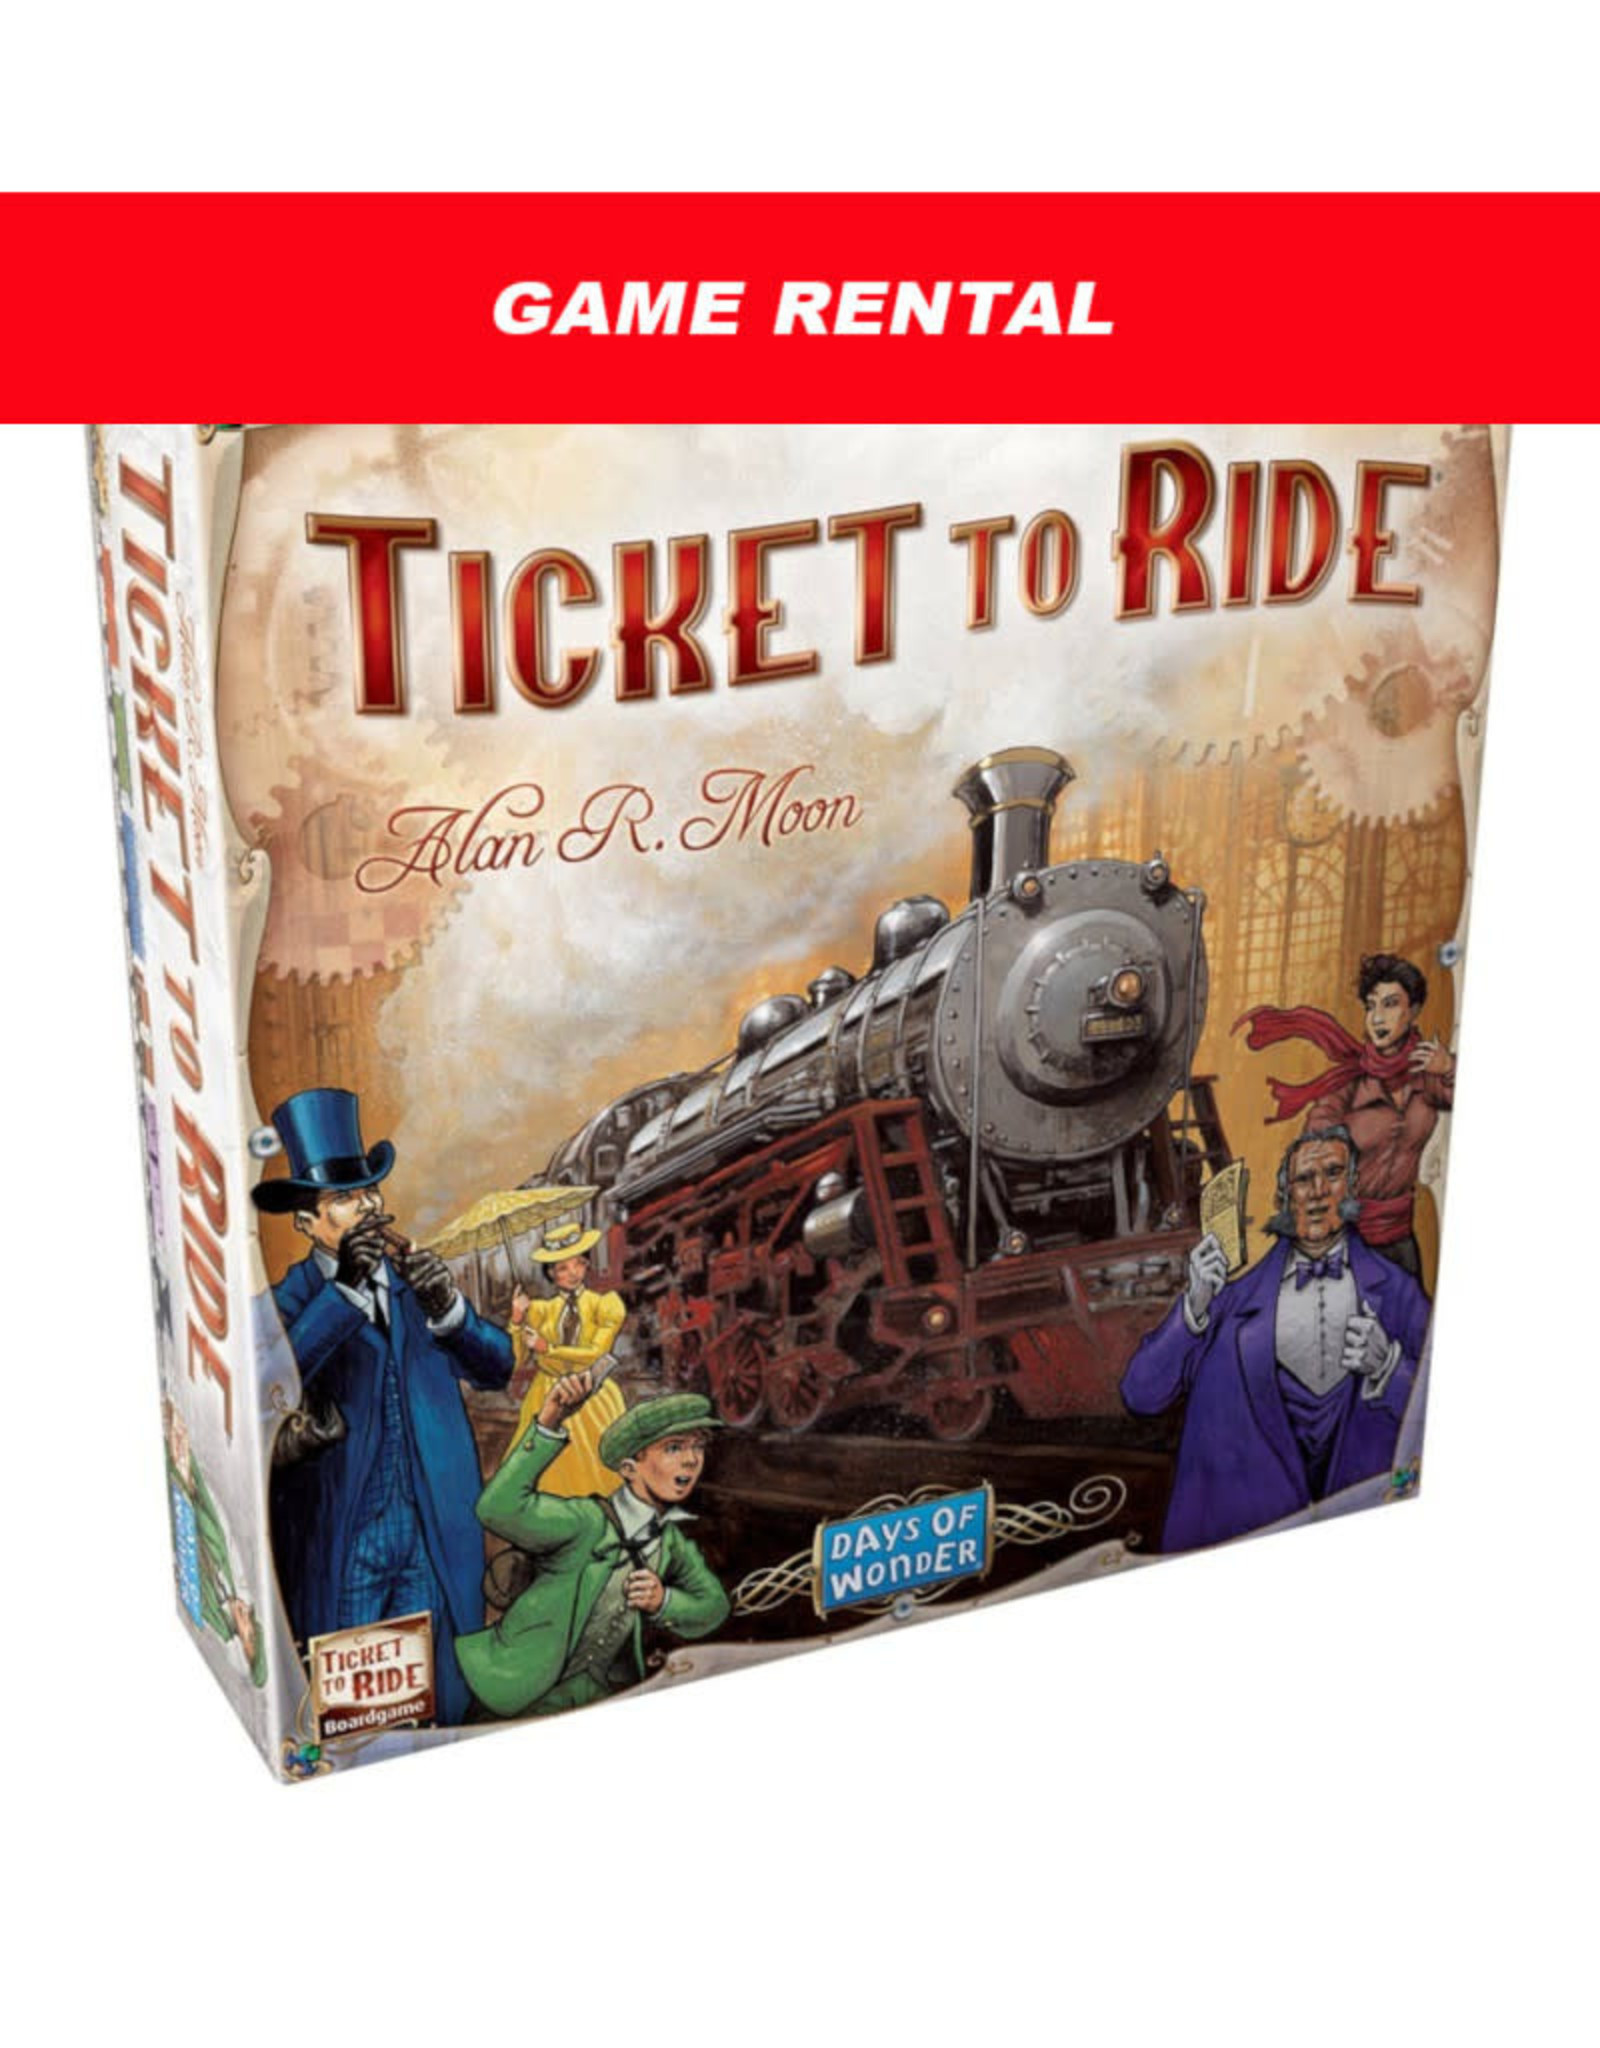 (RENT) Ticket to Ride (USA) for a Day. Love It! Buy It!